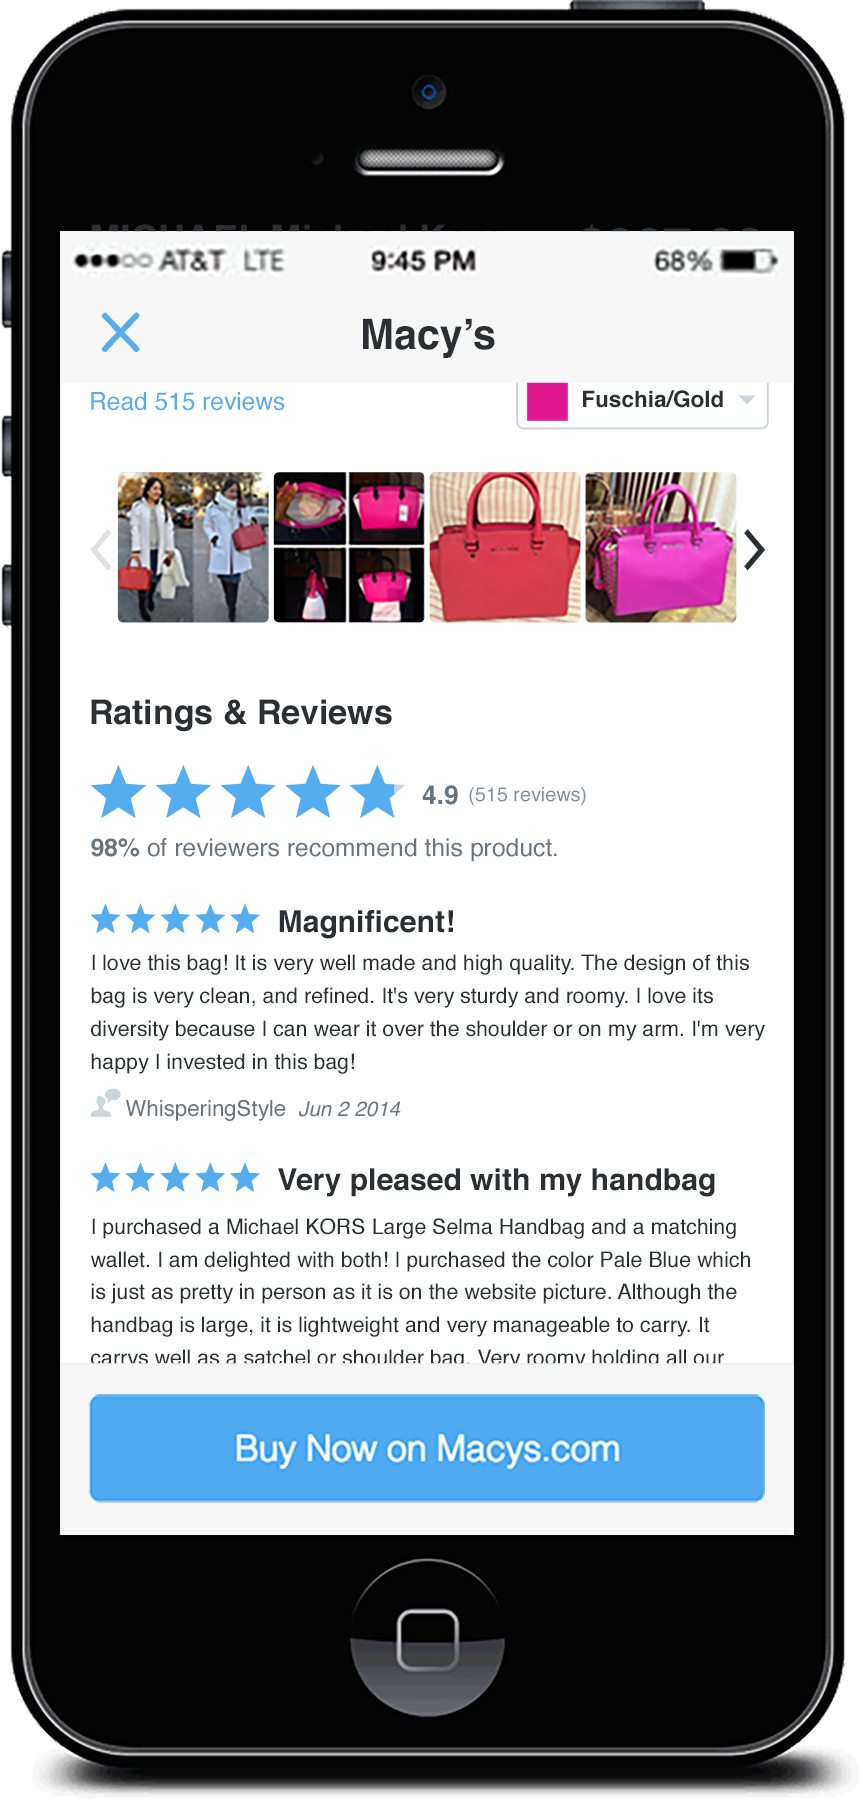 Another screenshot from the product detail screen,showing the user-submitted photos and reviews just below the hero photo.